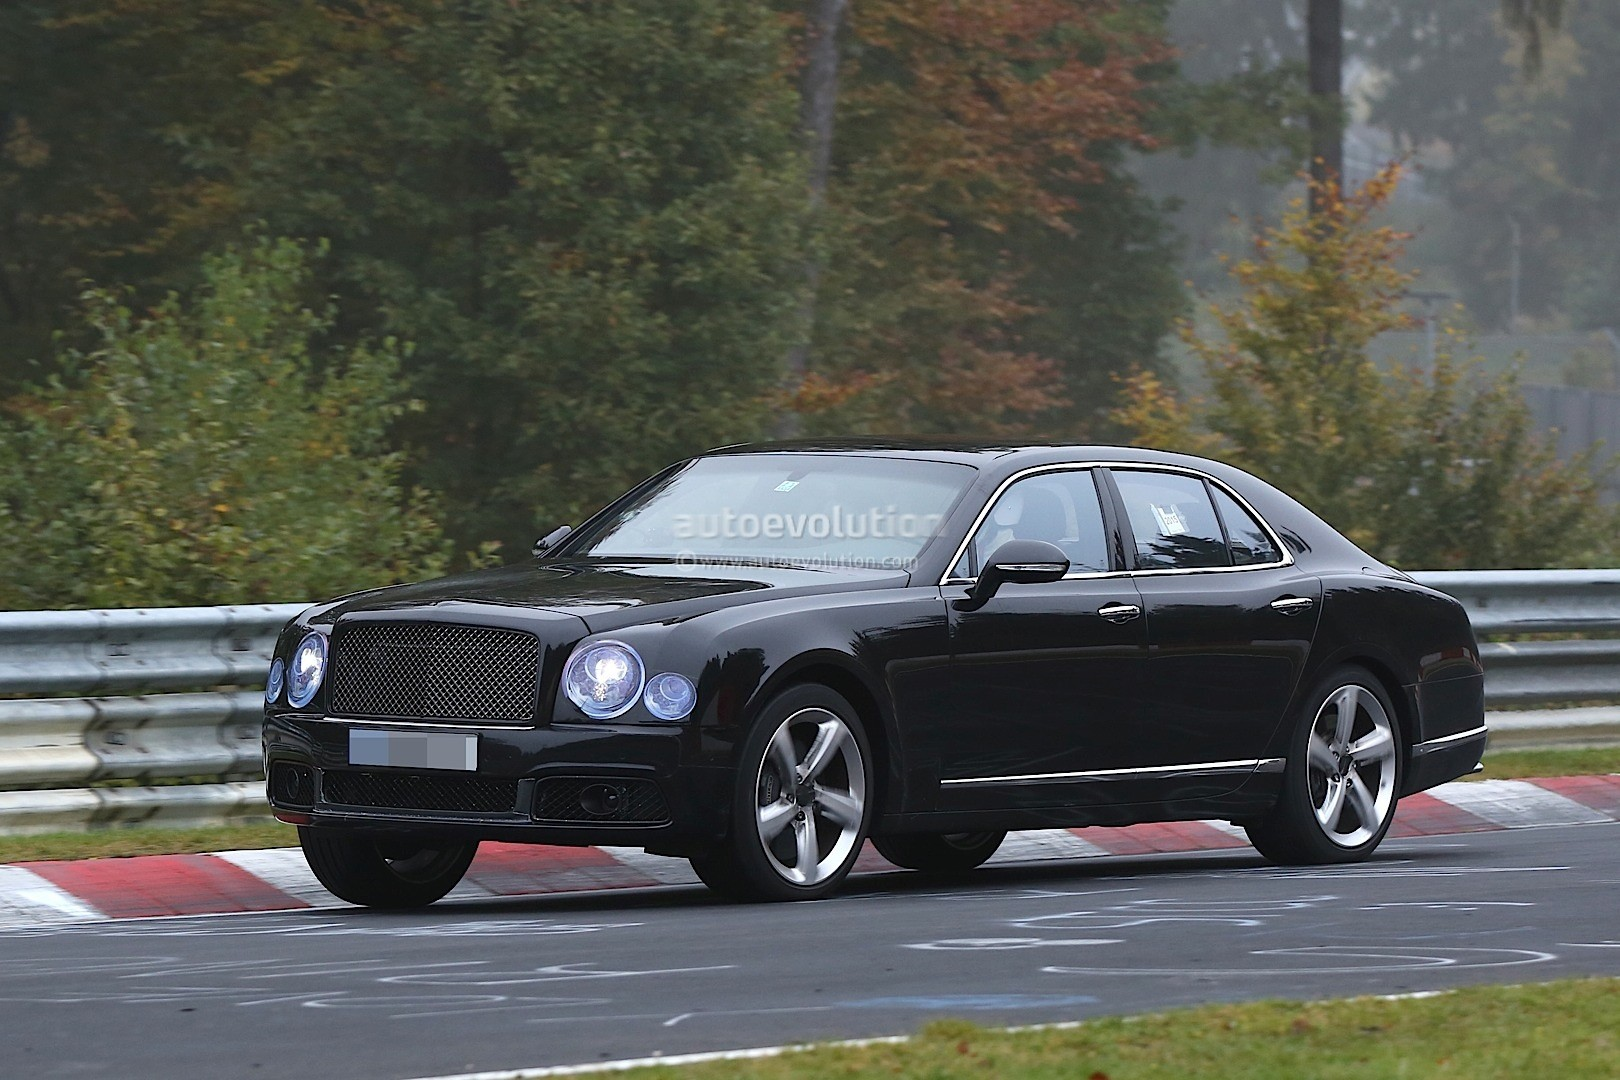 2019 Bentley Arnage photo - 2